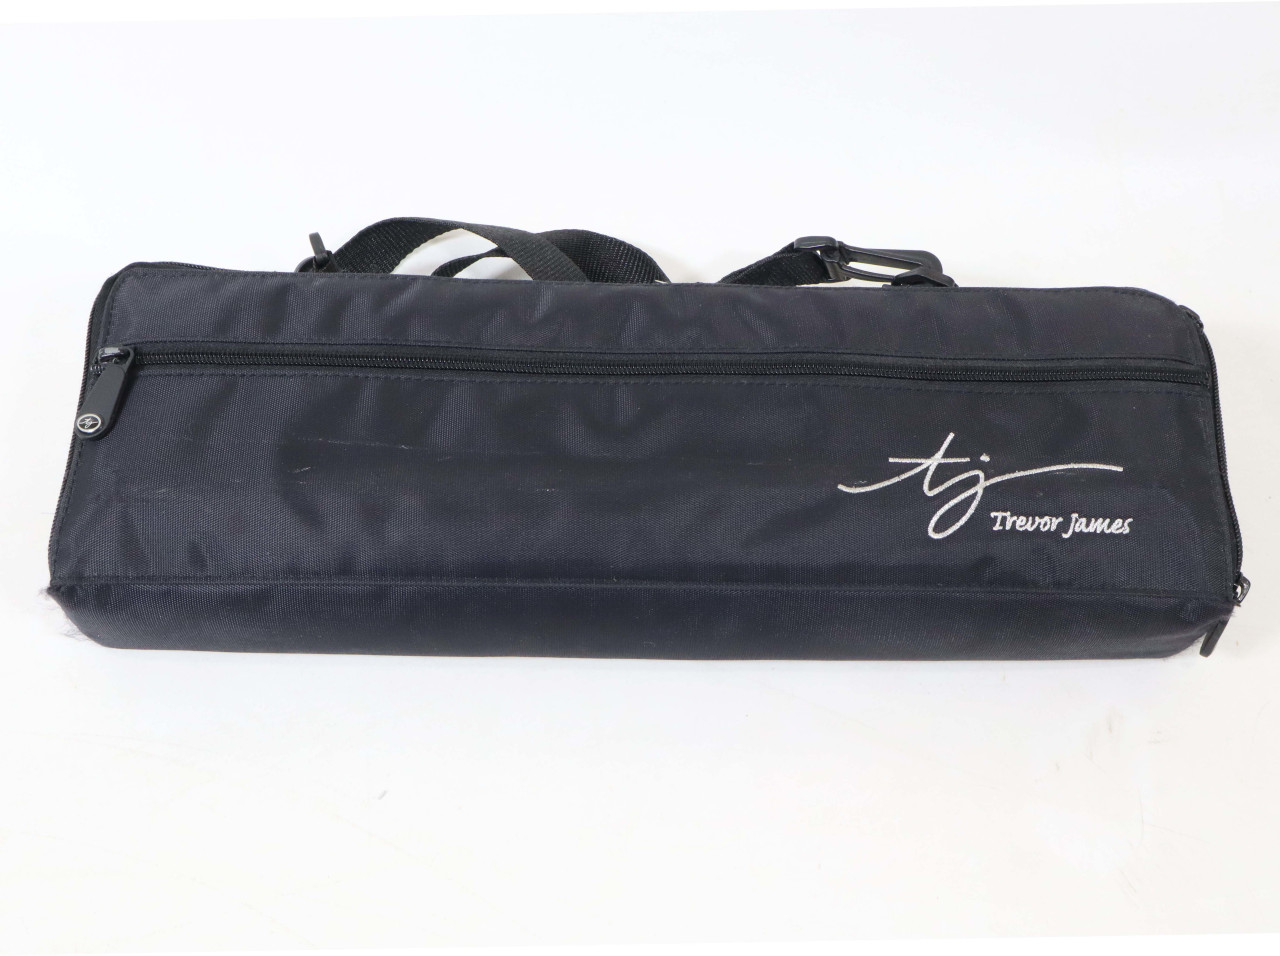 TREVOR JAMES 10XE FLUTE (CURVED & STRAIGHT HEAD JOINTS) - REFURBISHED 5